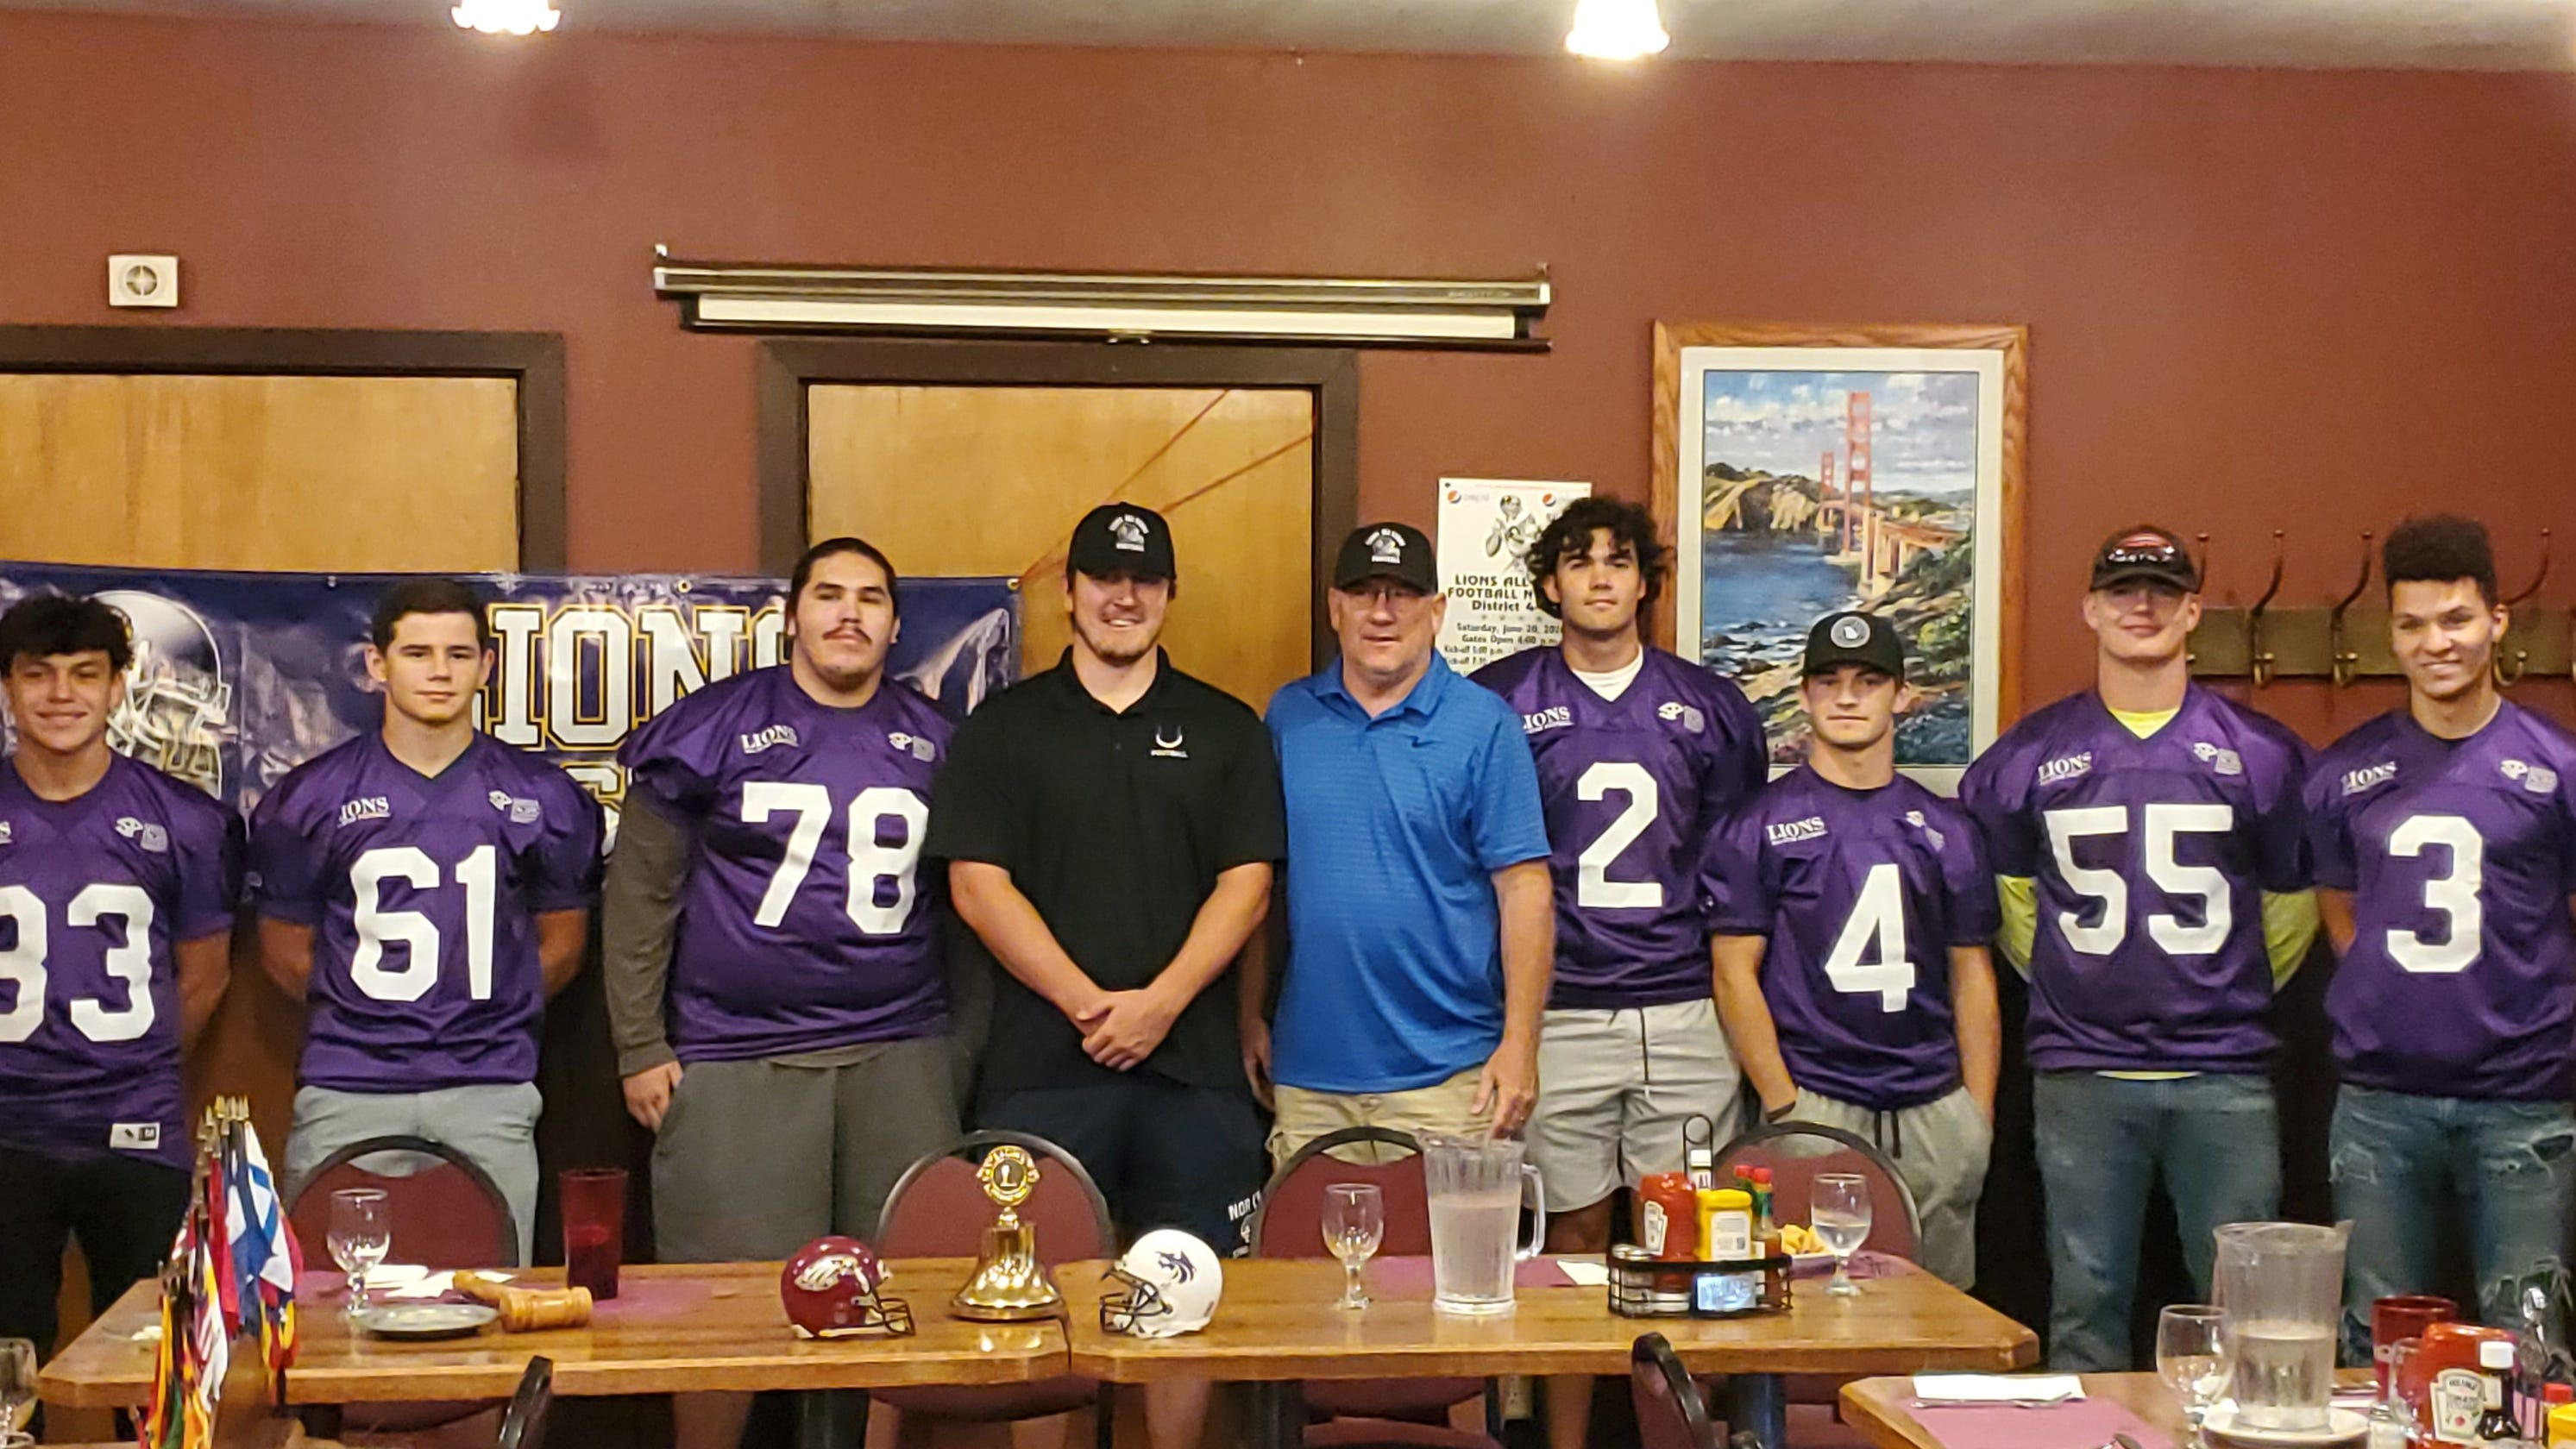 Lions Club pays tribute to these seven all-star football athletes from the Redding area